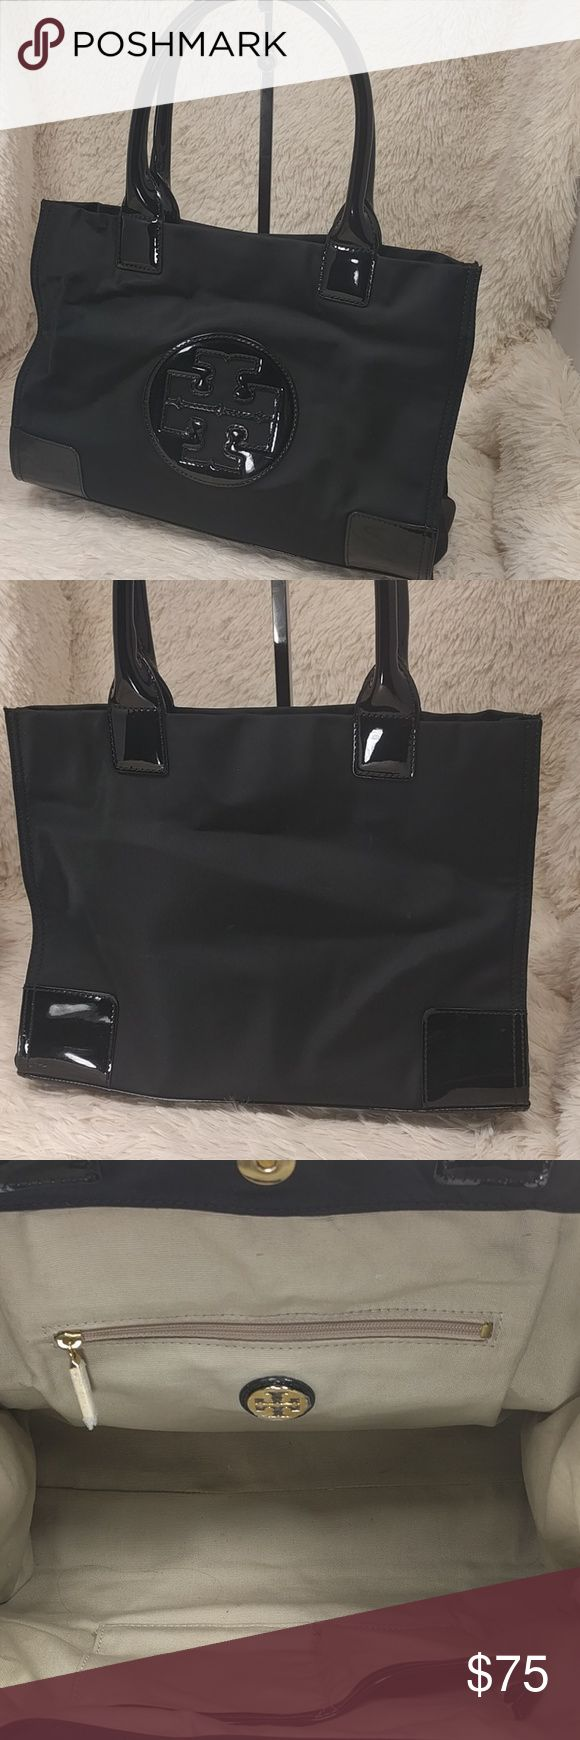 Tory Burch Mini Nylon Ella Tote Black nylon and patent leather with gold hardware.  This one must have been a demo unit because the factory film is still on the interior logo and zipper pull.  Very light signs of use at the corners(minor scratches) and there are a couple very small spots on the back (tough to see-should clean up with some dish soap) and the handles have lost some PVC (where the handles meet-see pic 4).  I would rate 8/10 and still very much carryable to work, school, or…